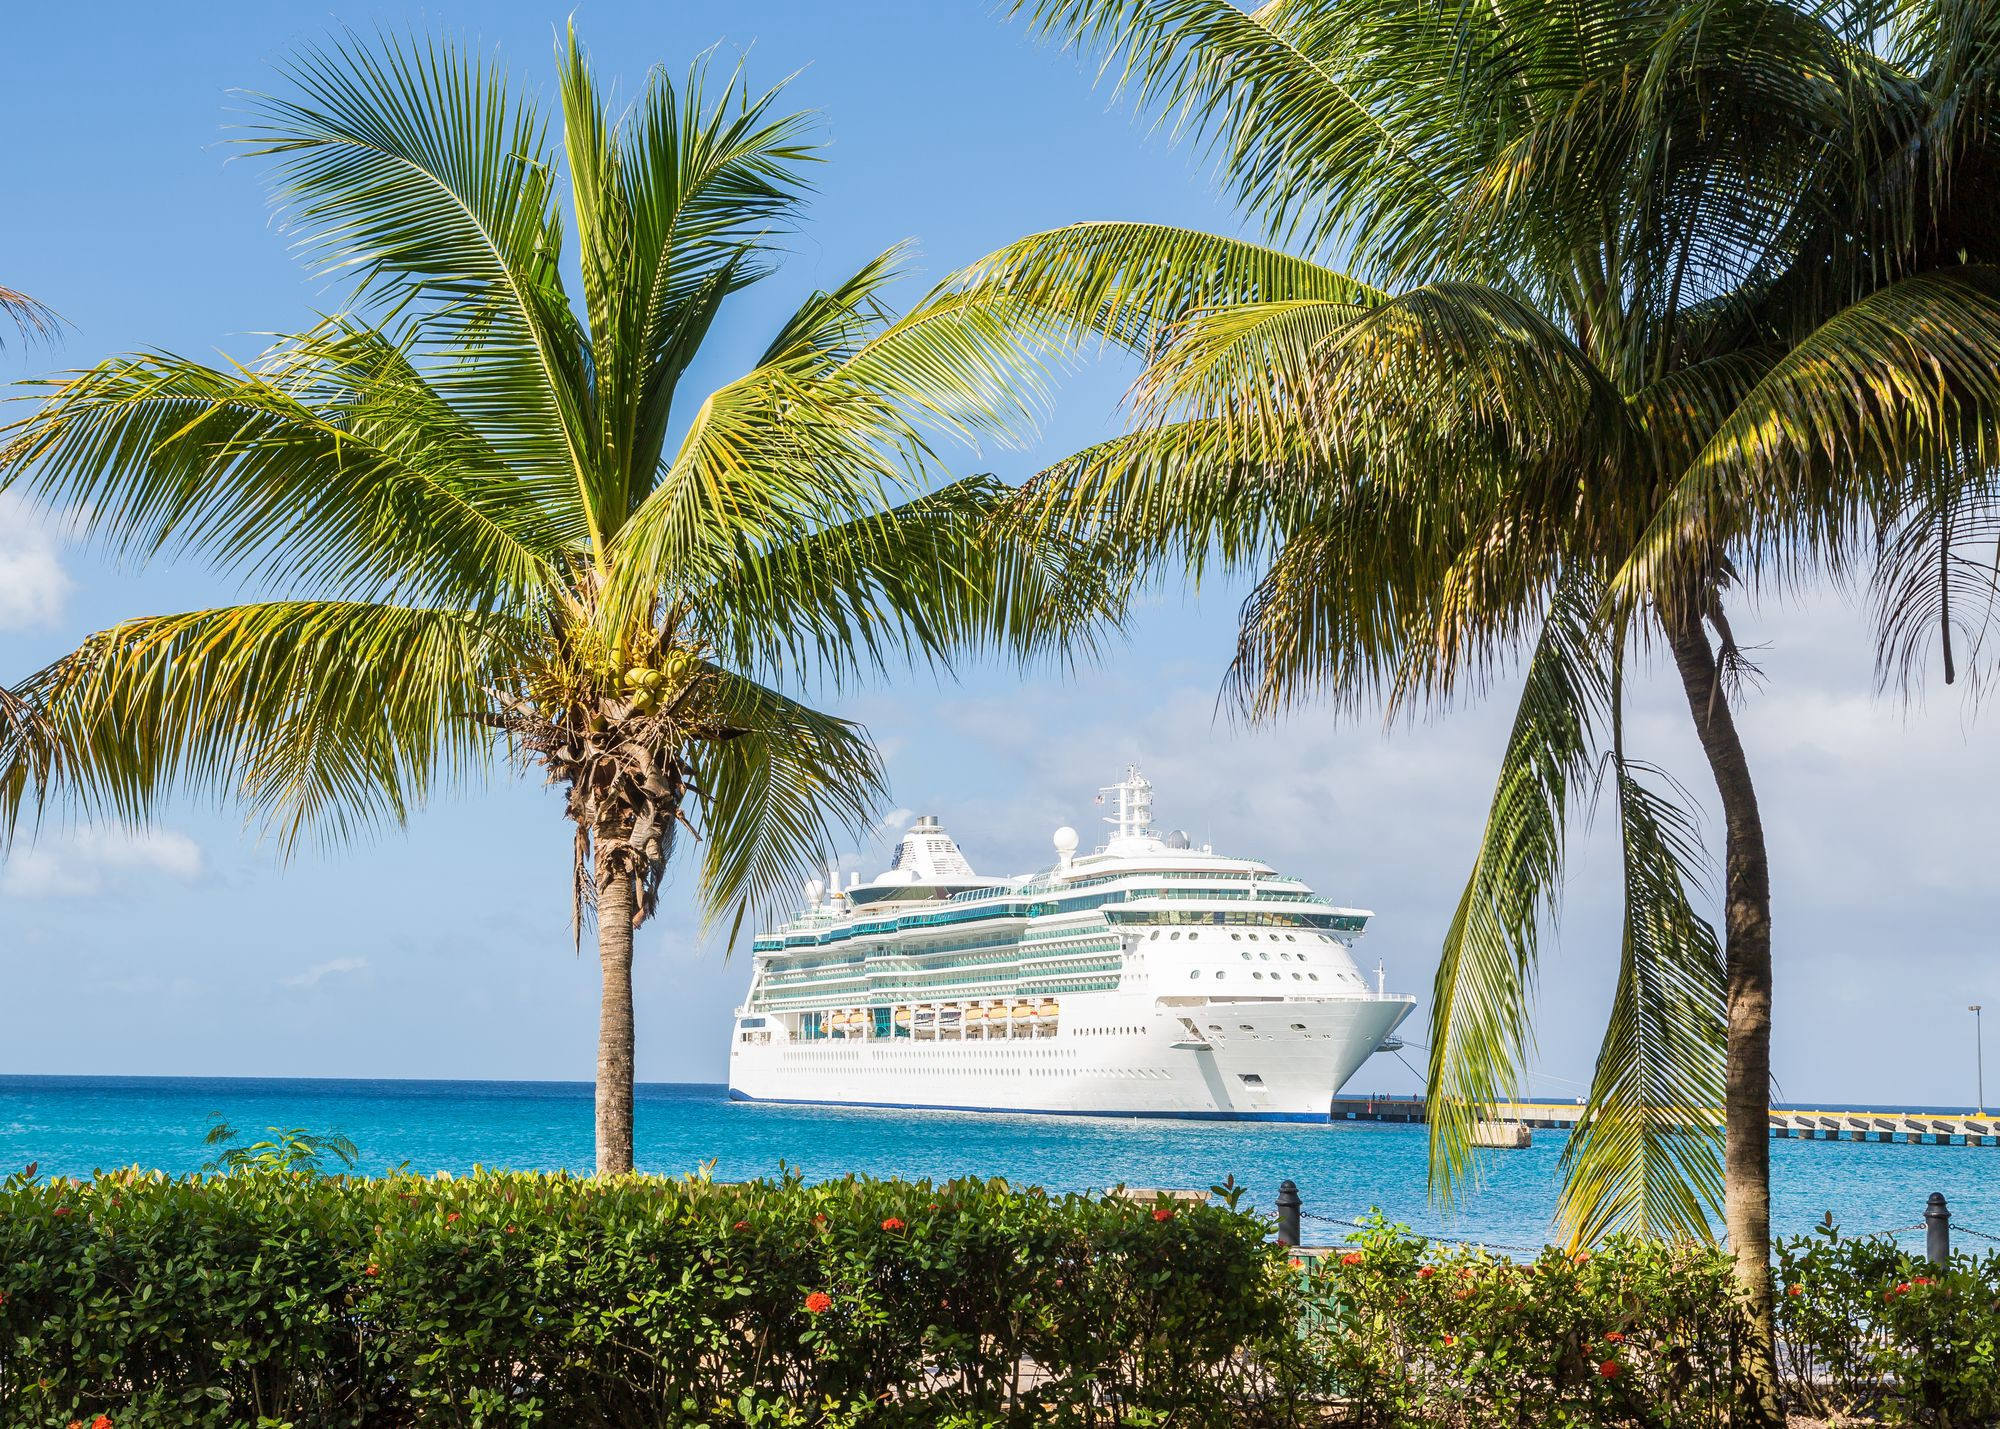 Cruise Ship Image for the Future of Cruising by Darryl Brooks